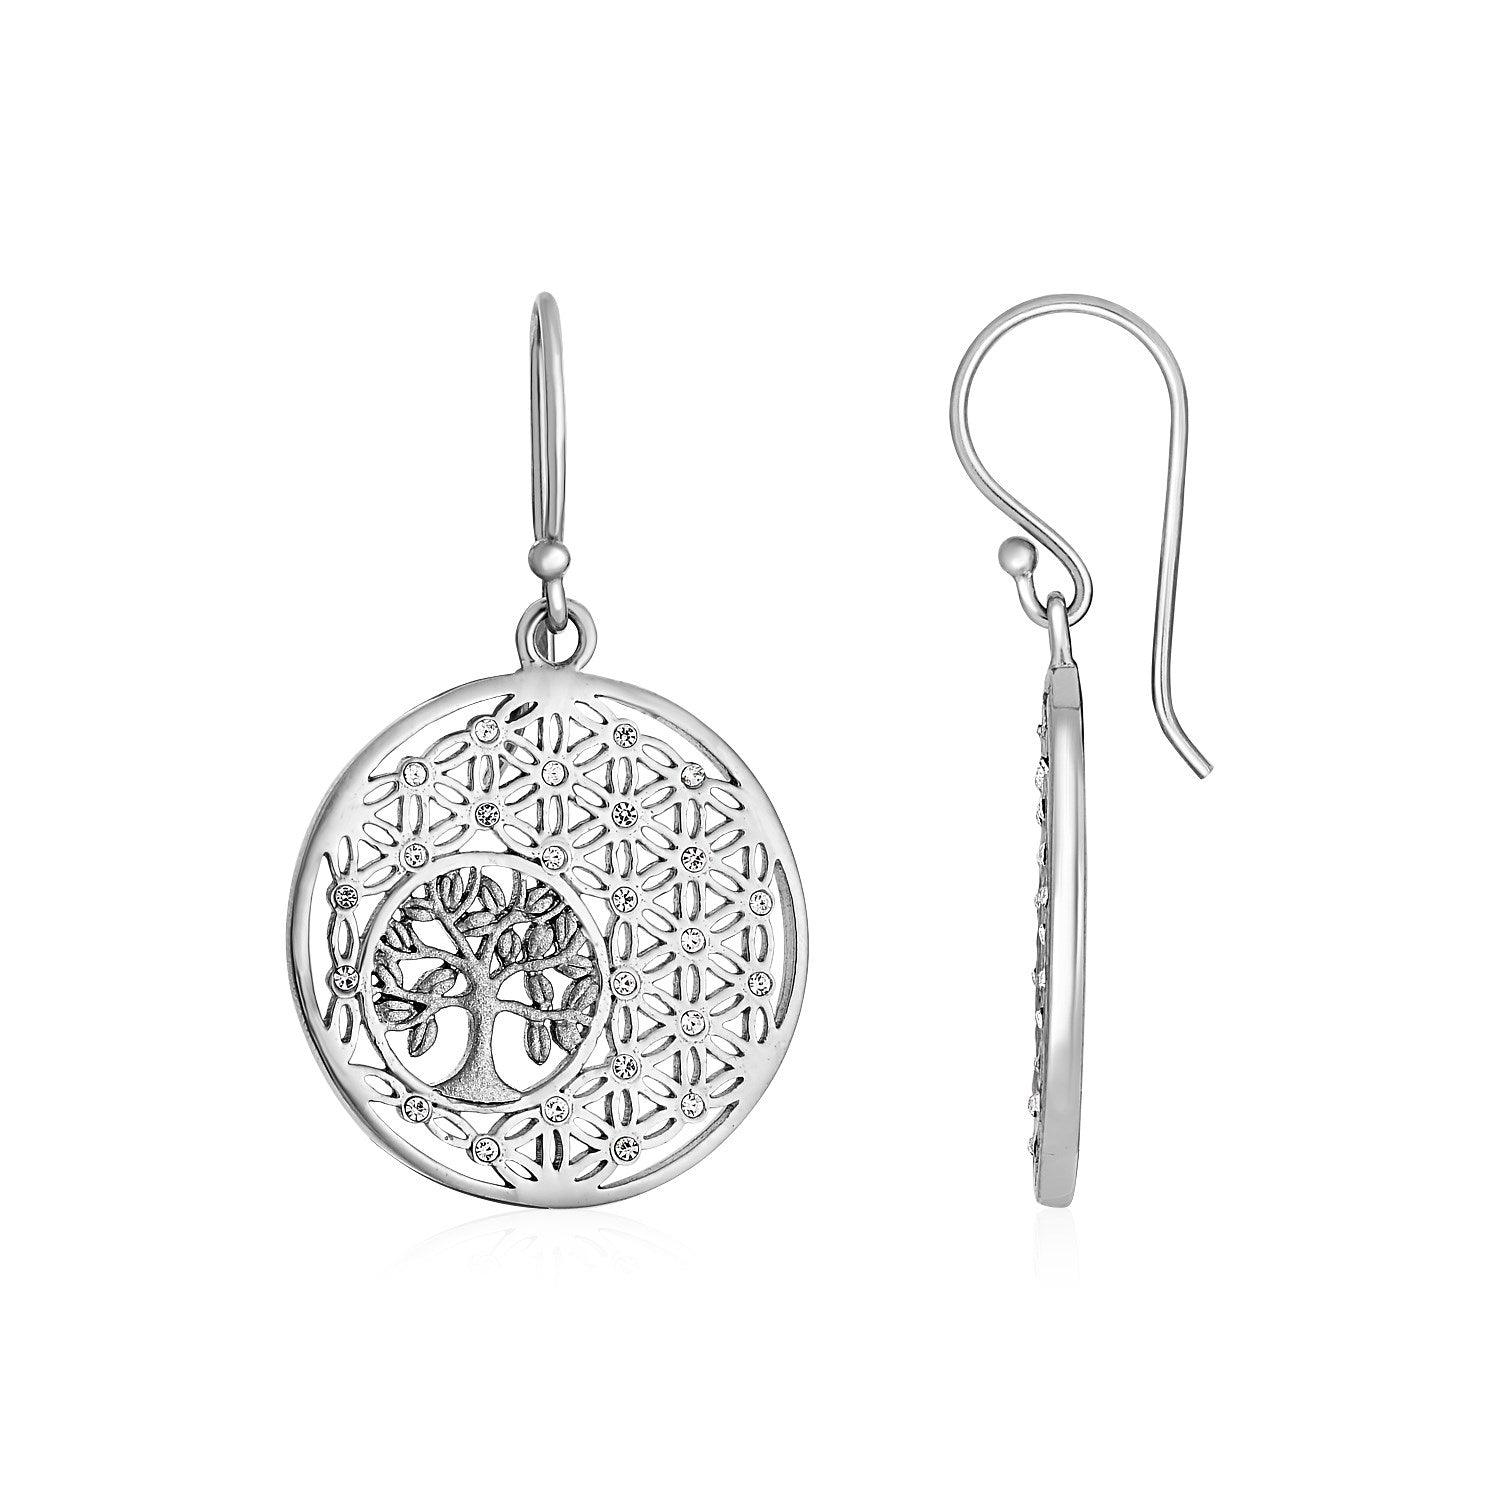 Earrings with Tree of Life and Geometric Pattern in Sterling Silver